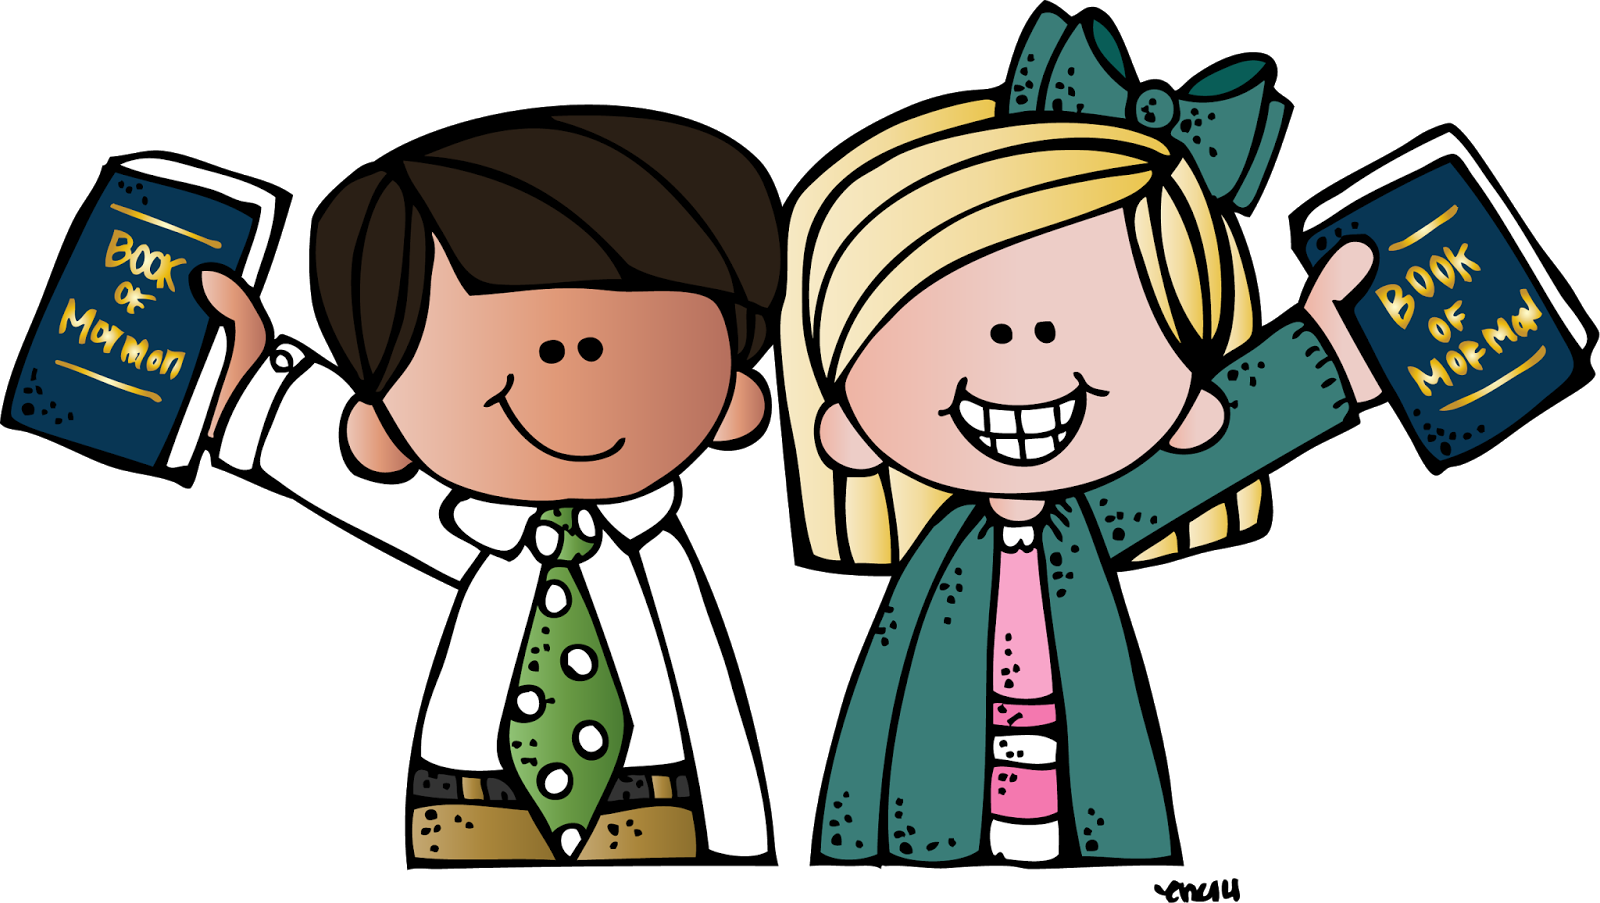 clipart of the book of mormon - photo #42